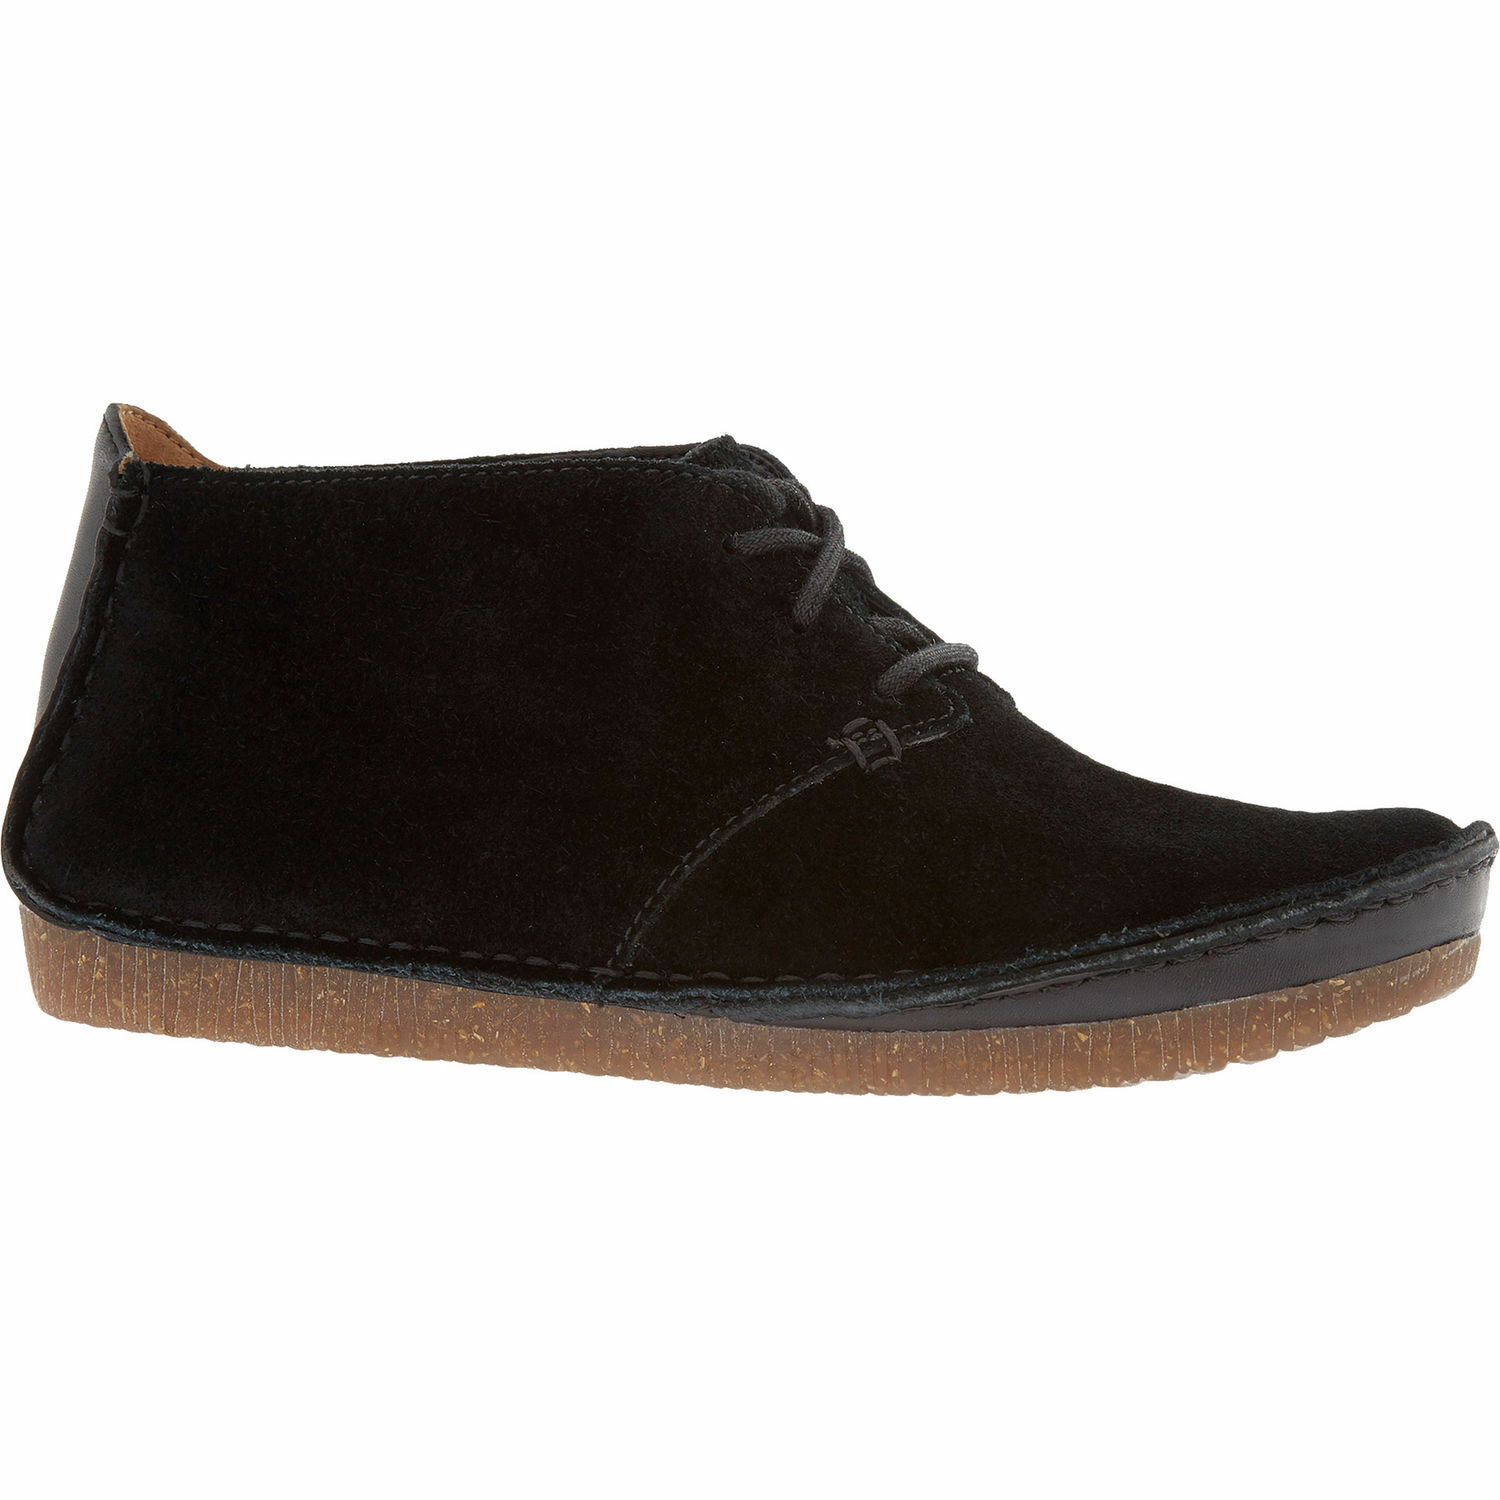 CLARKS Women's Black Suede Janey Lynn Ankle Boots - size UK 3.5   EU 36